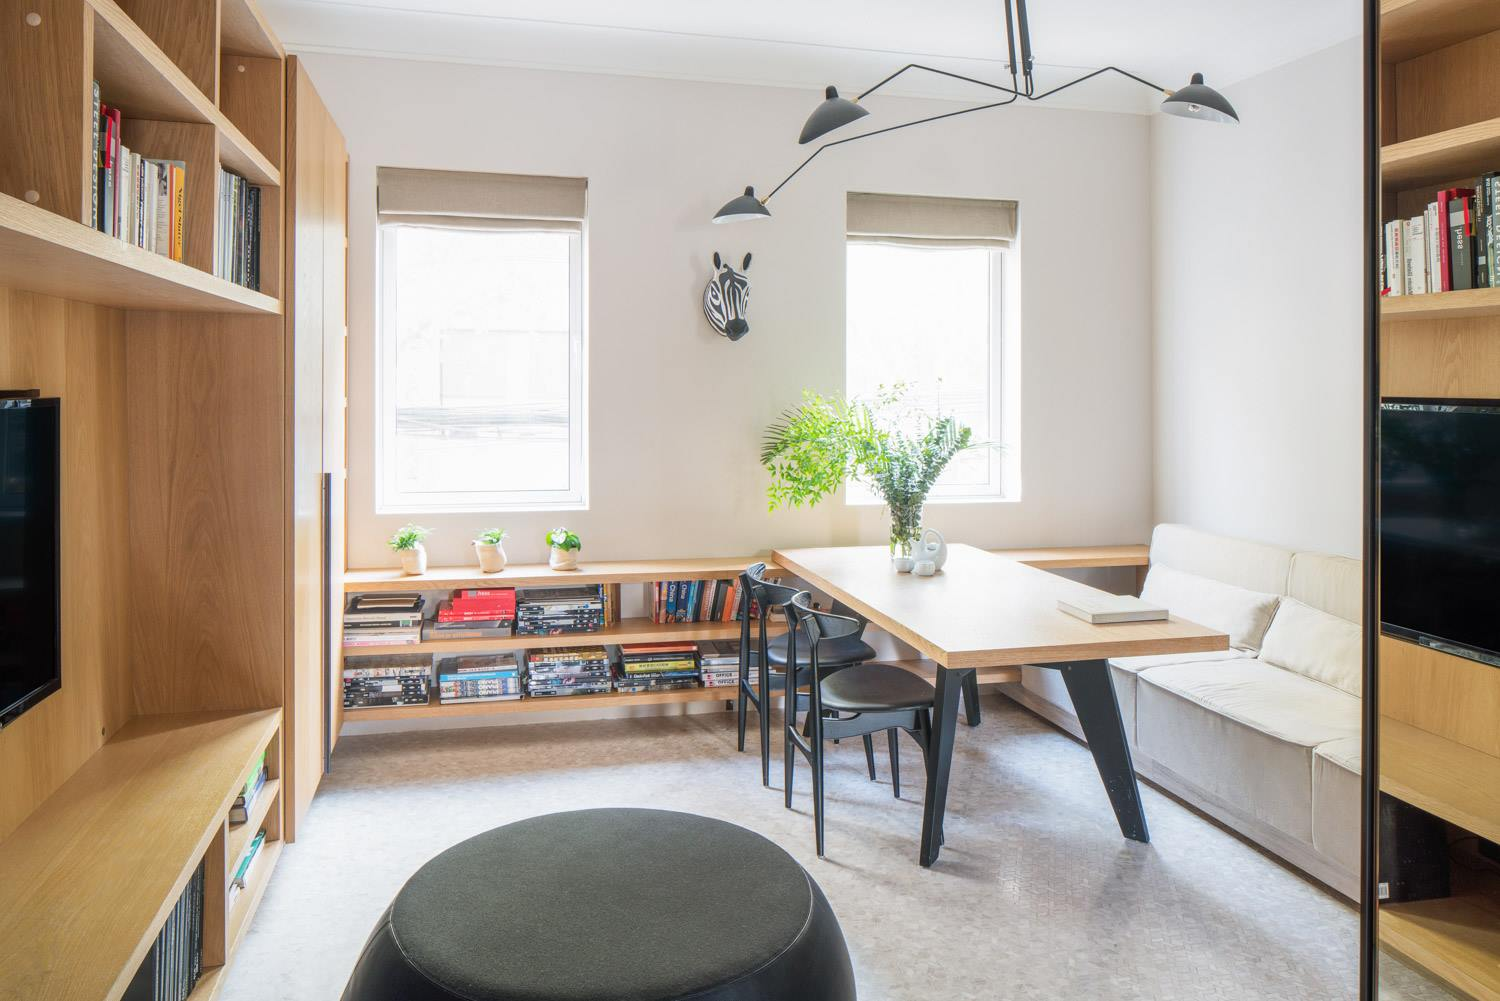 Apartment Offers Best Of One Bedroom And Studio Living